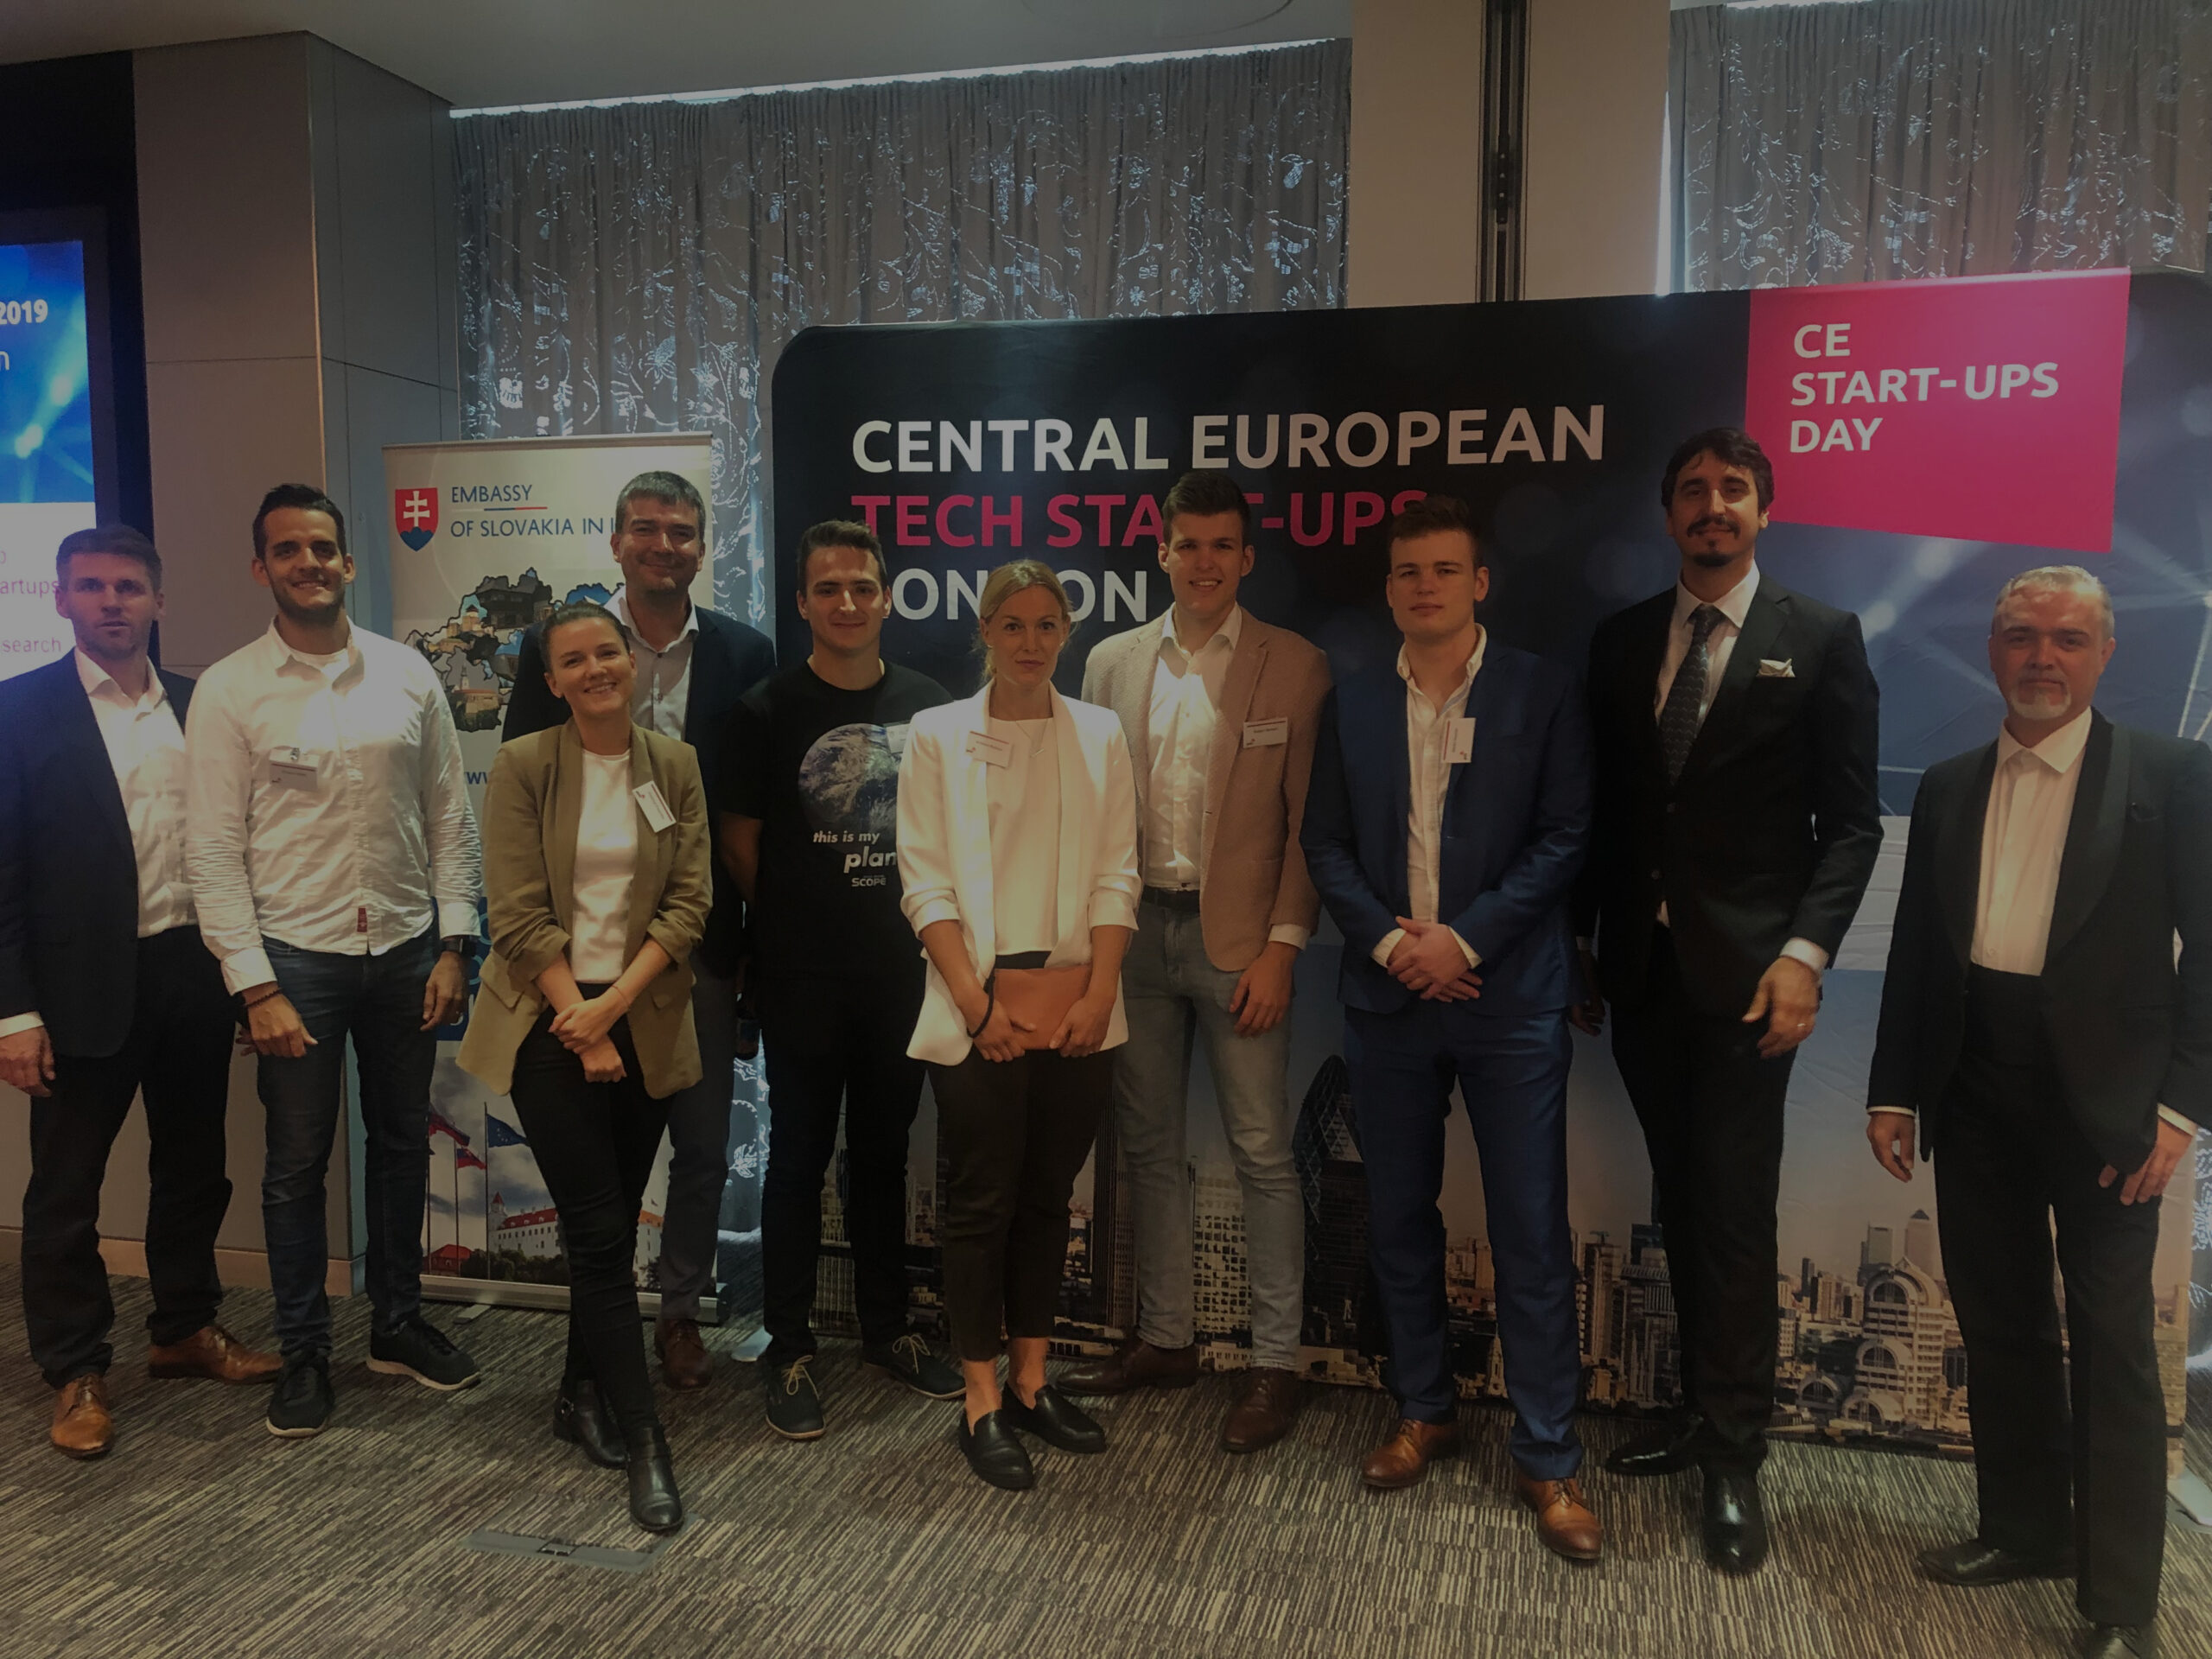 Central European Startups London